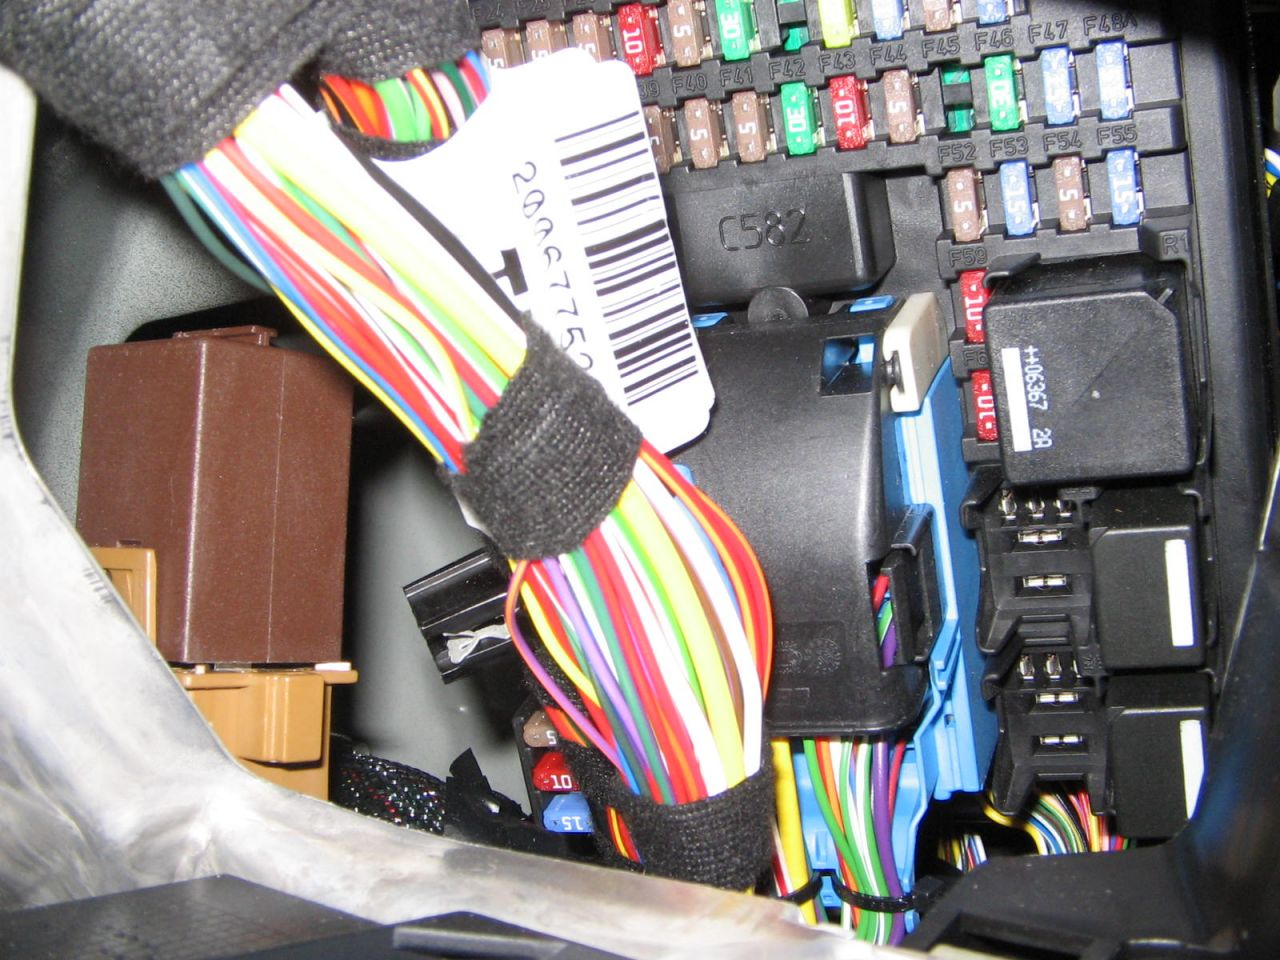 Rover Tc 2000 Engine Diagram Wiring Master Blogs P6 Fuse Box Location Inside Car Volvo V70 Mitsubishi 3000gt Front